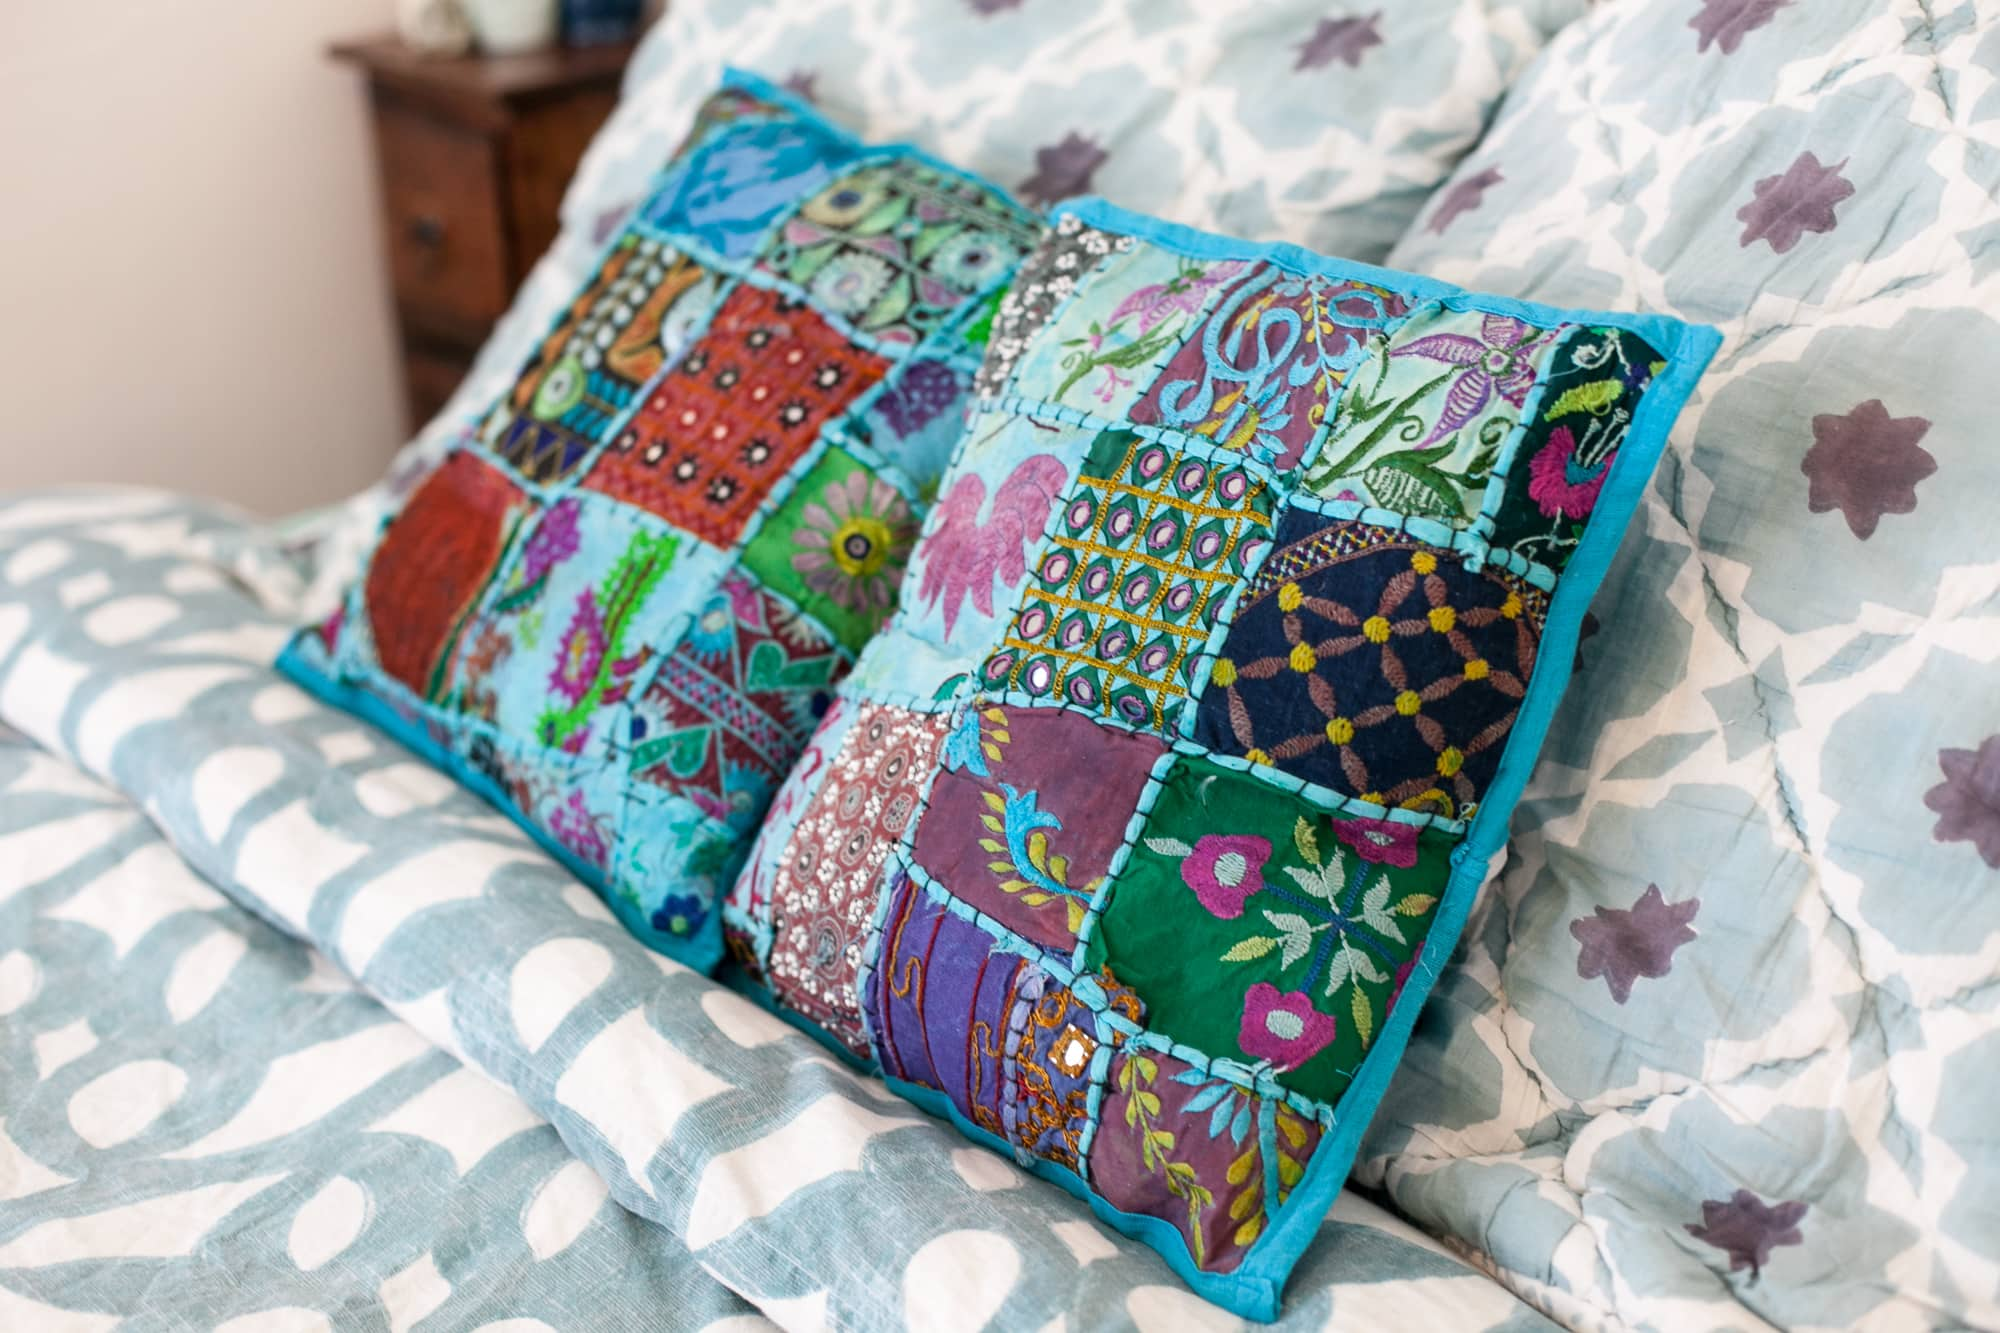 Pillows from India.